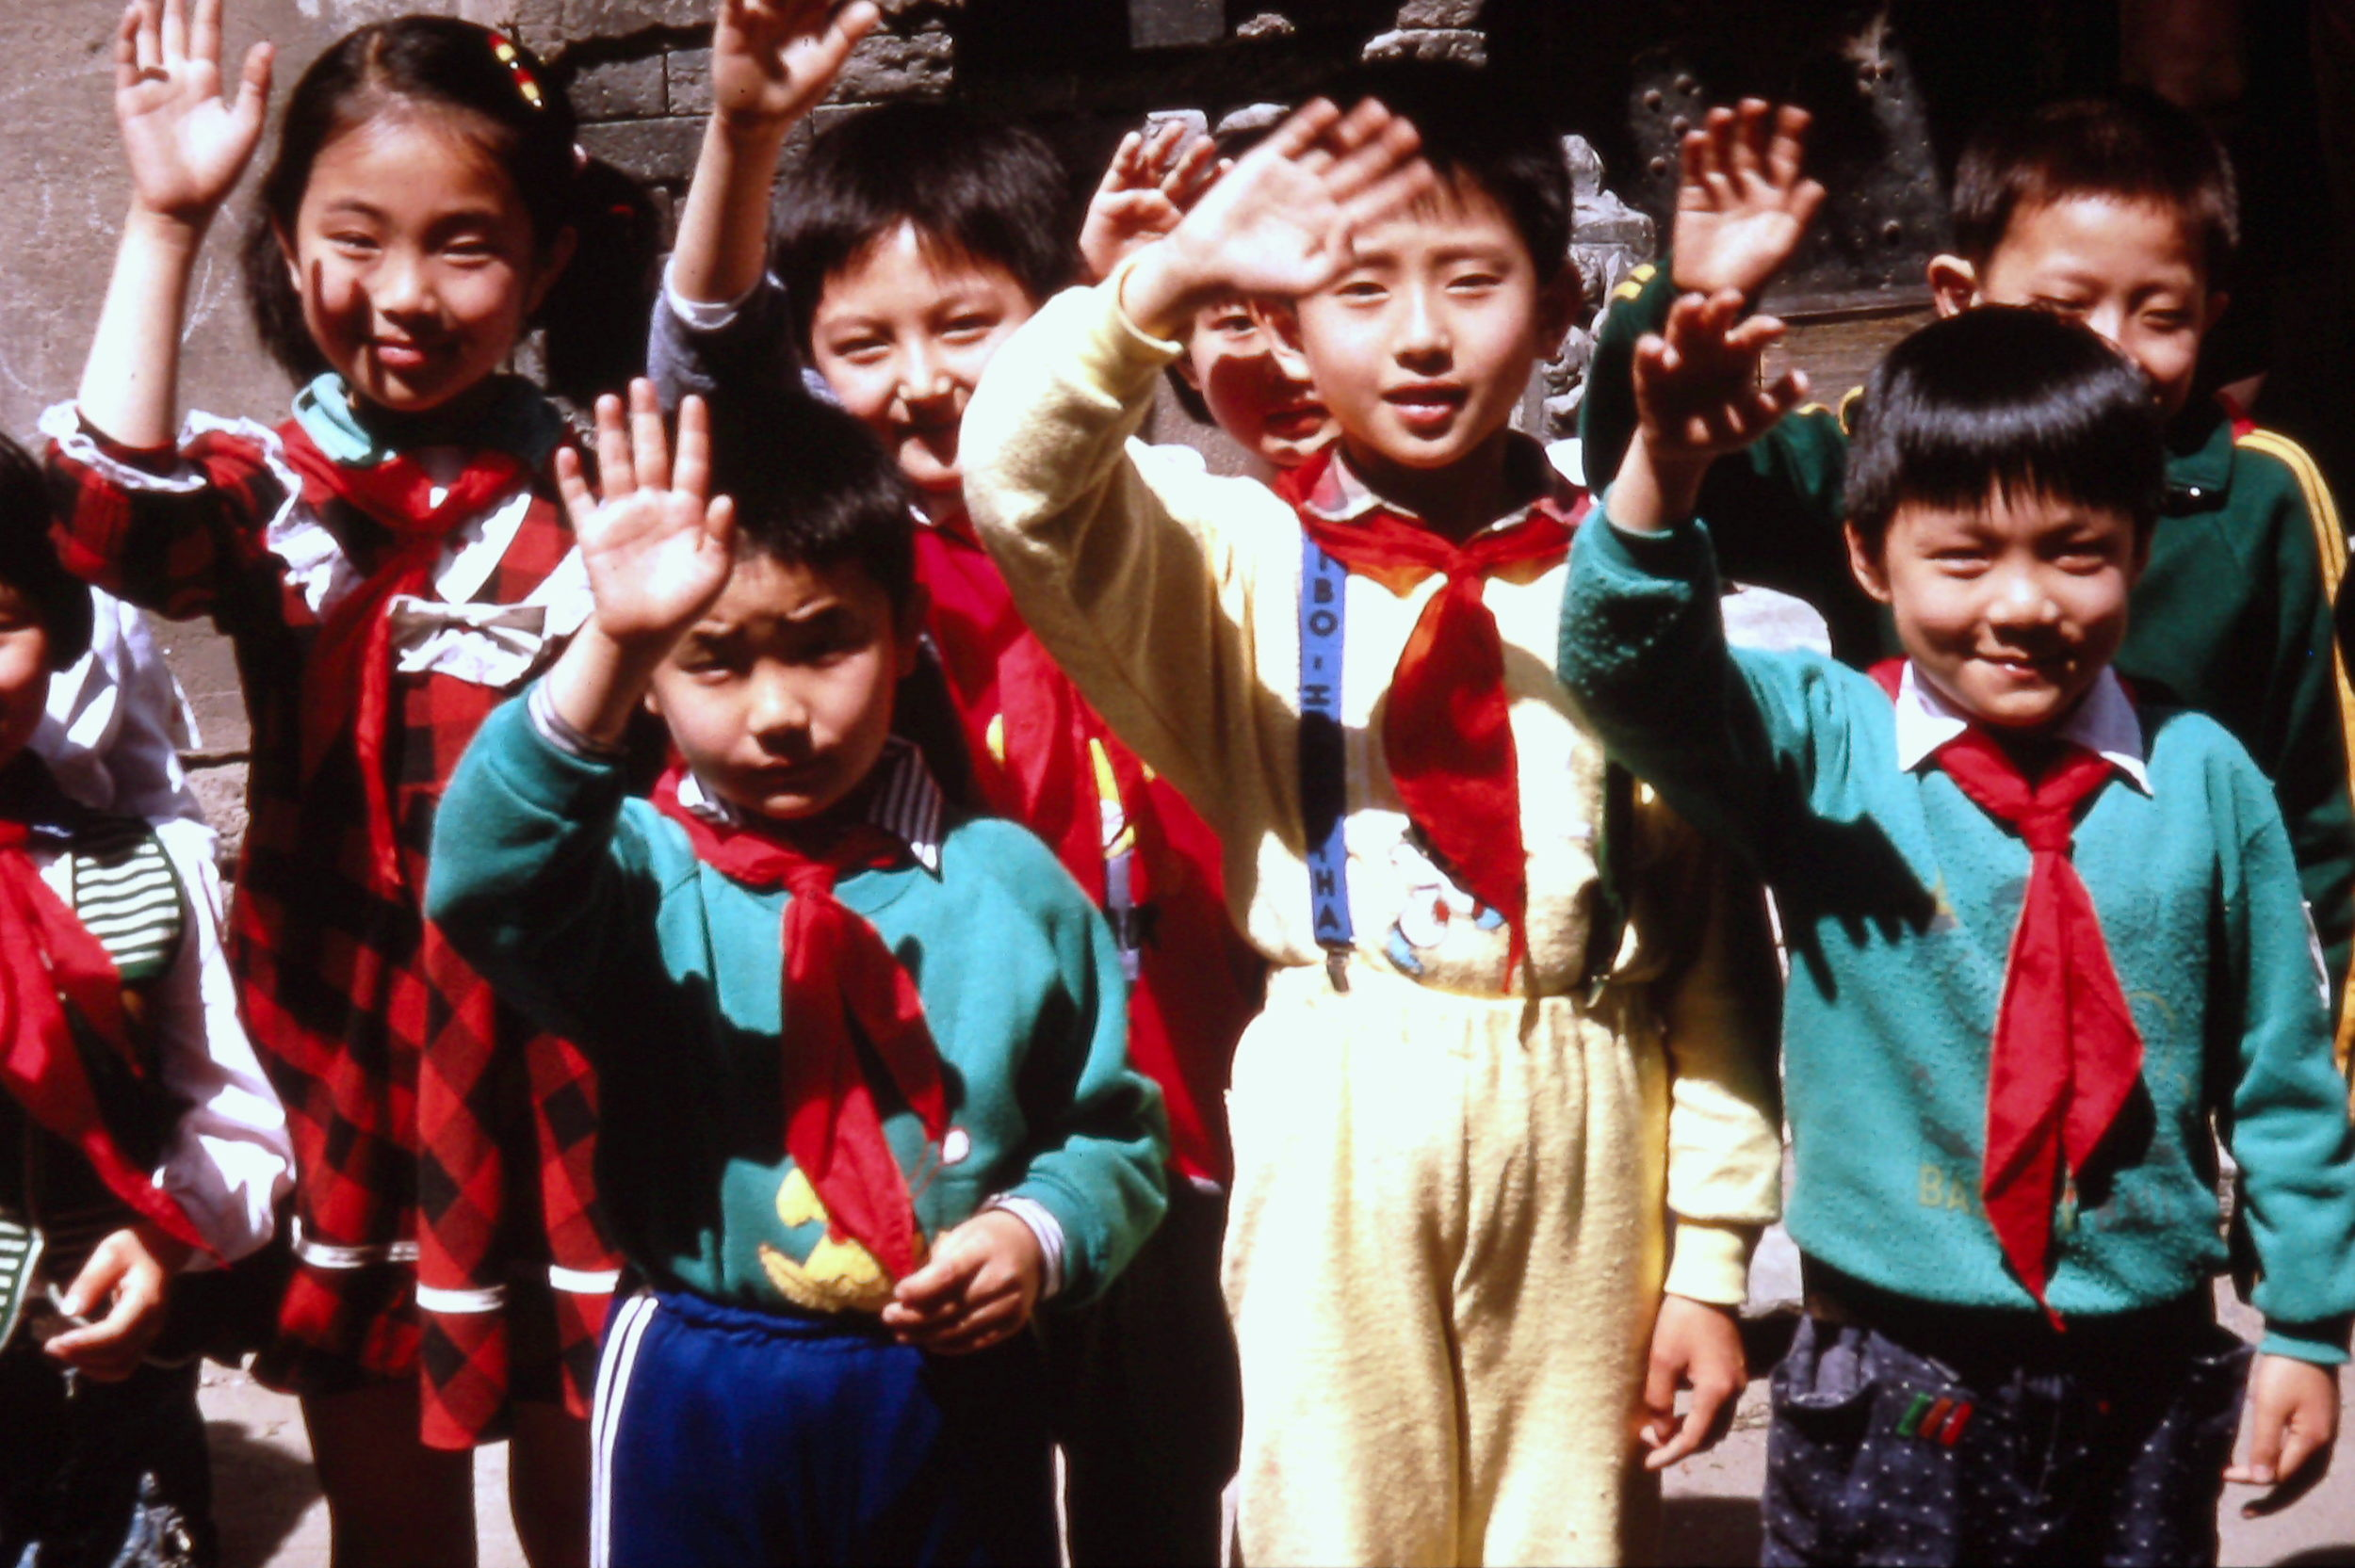 Children on the street wave to the Trans-Antarctica bus as it travels through Beijing, China, May 1990. Photo: Cathy de Moll